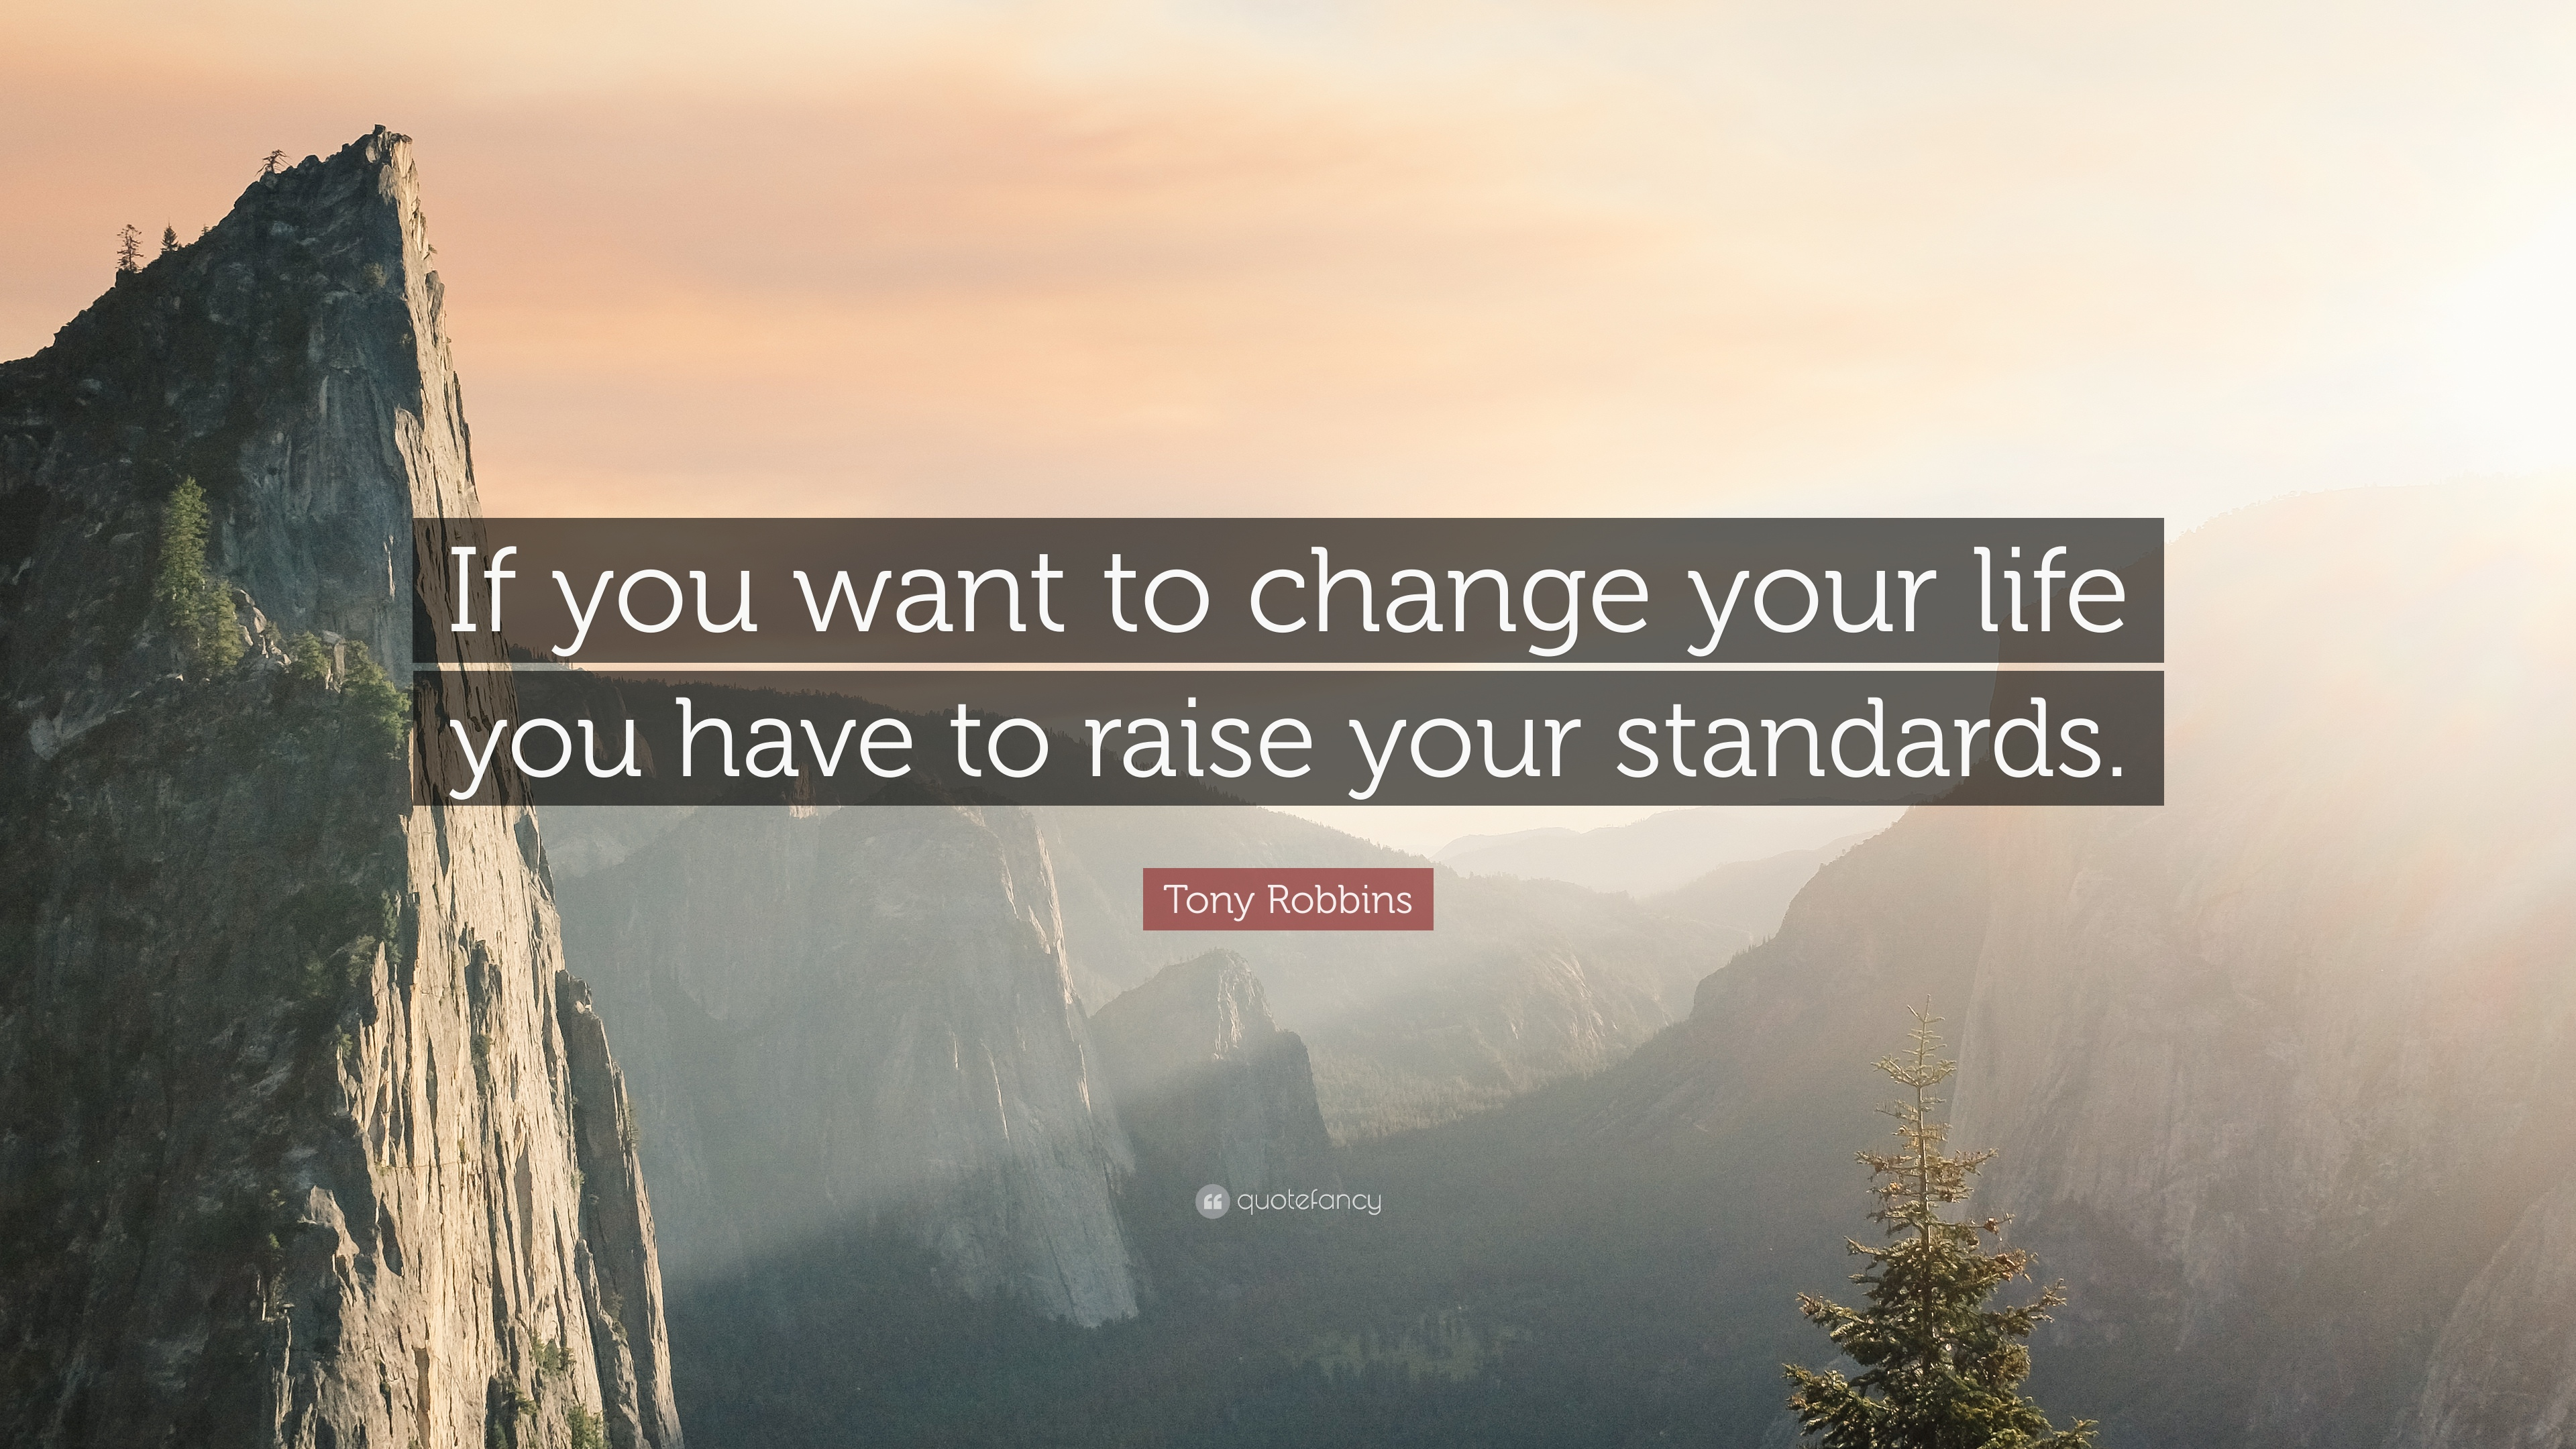 Tony Robbins Quote If You Want To Change Your Life You Have To